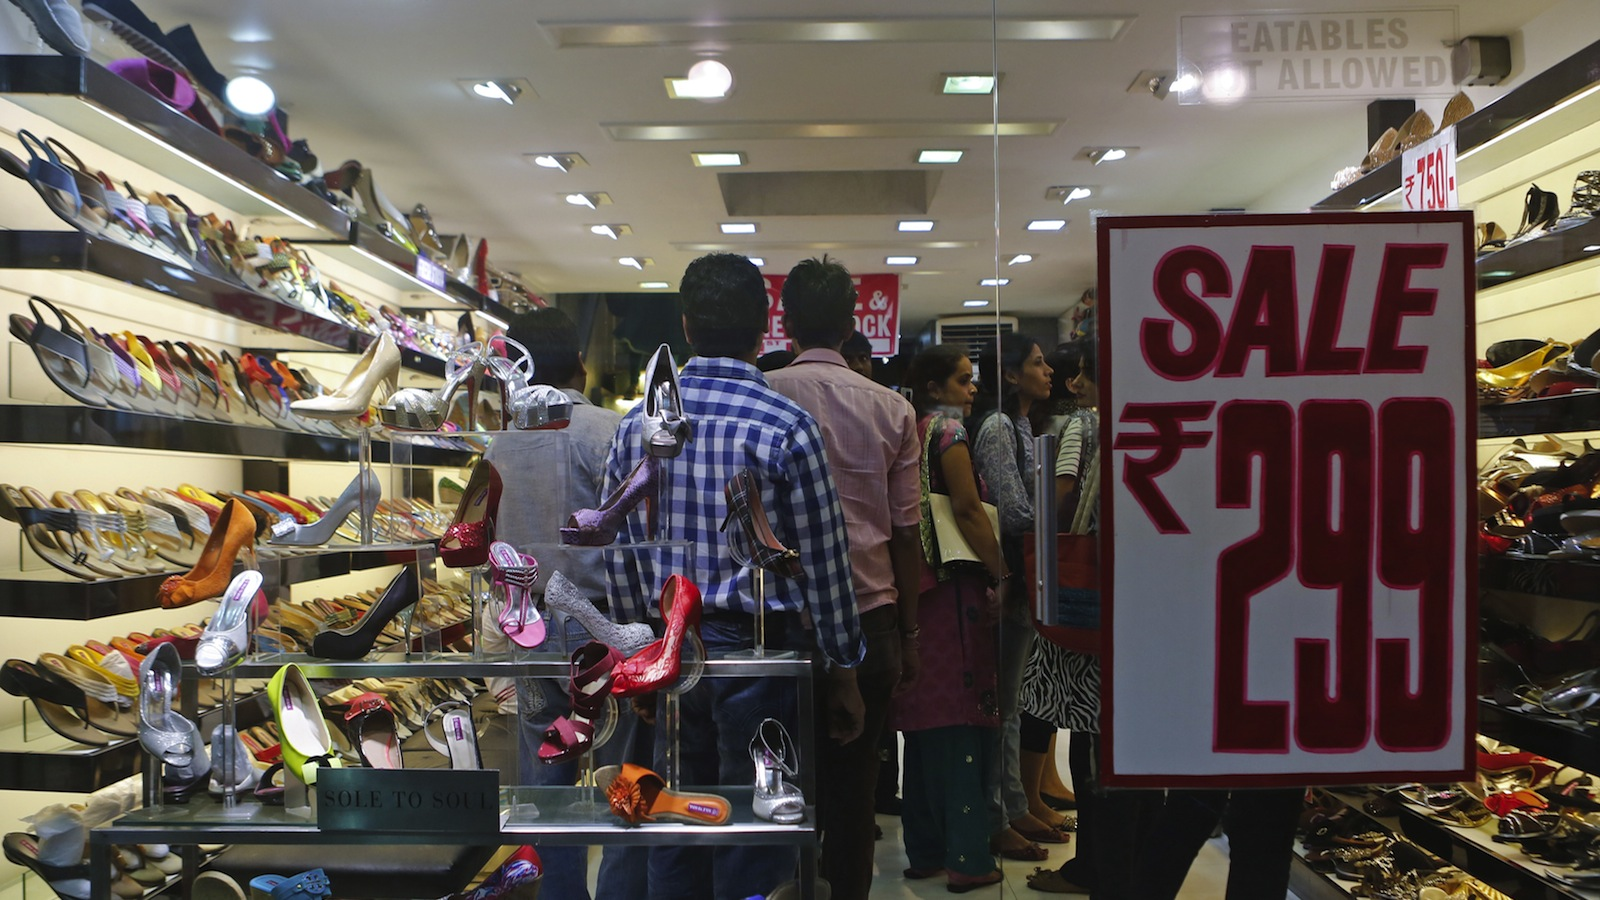 People shop inside a shoe store on a street in Mumbai September 11, 2013. In a capitulation that speaks to the depth of the slump in India's economy, usually tight-fisted retail landlords have become uncharacteristically flexible on rents. Retailers in India say they can now negotiate revenue sharing deals or discounts on rent of up to 20 percent and many are jumping at the chance, not necessarily because they see a bottom to the economic downturn but because the supply of new retail space is expected to tighten sharply from 2015. Picture taken September 11, 2013.